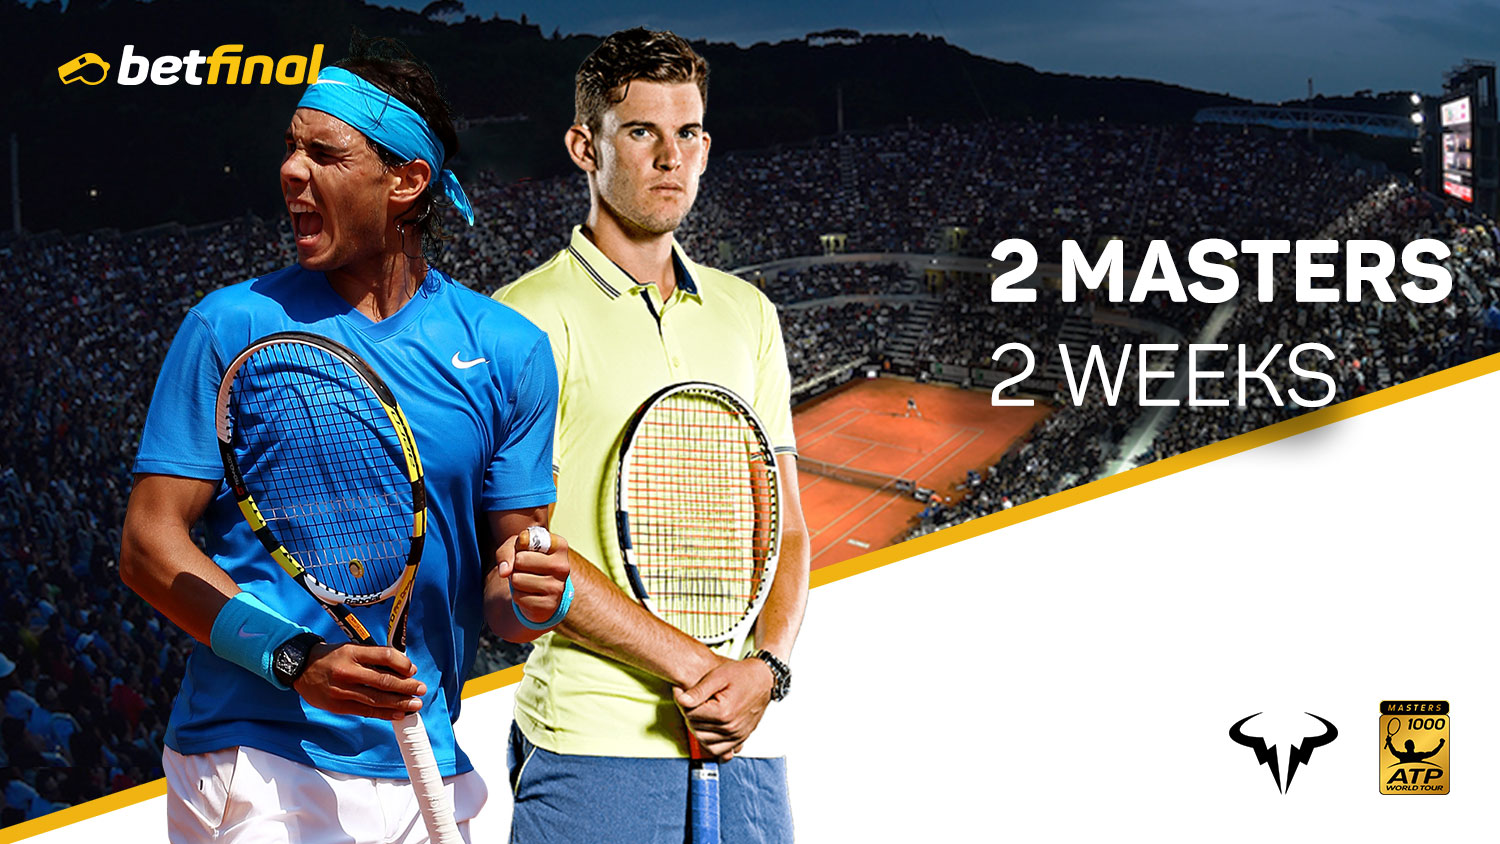 Two Masters in two weeks – Rome Open, ATP World Tour – Masters 1000. May 6-13 2018.